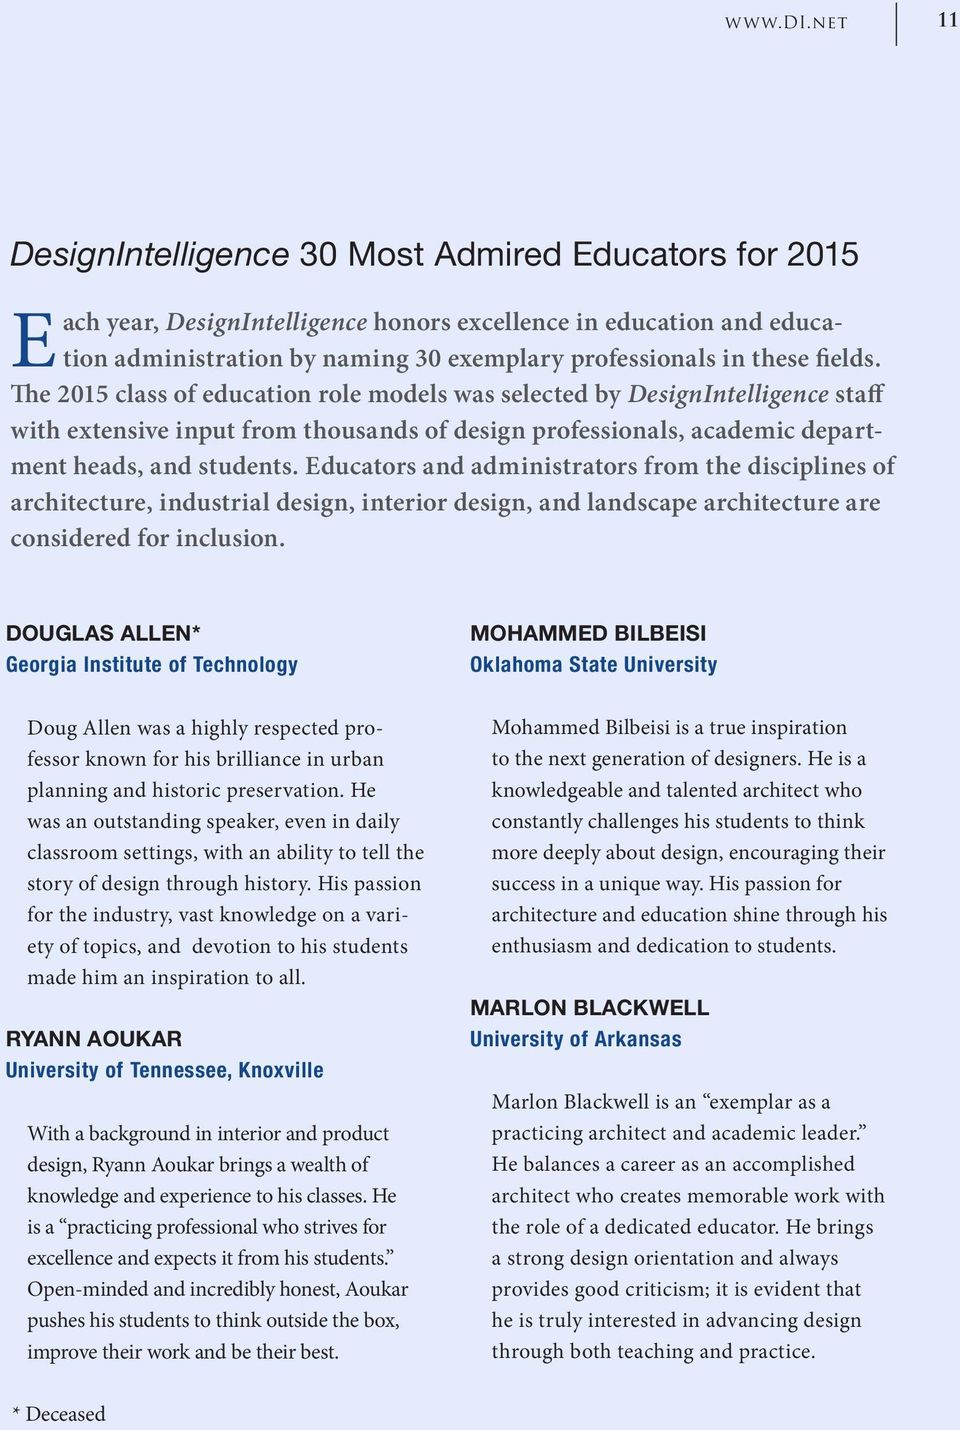 fields. The 215 class of education role models was selected by DesignIntelligence staff with extensive input from thousands of design professionals, academic department heads, and students.